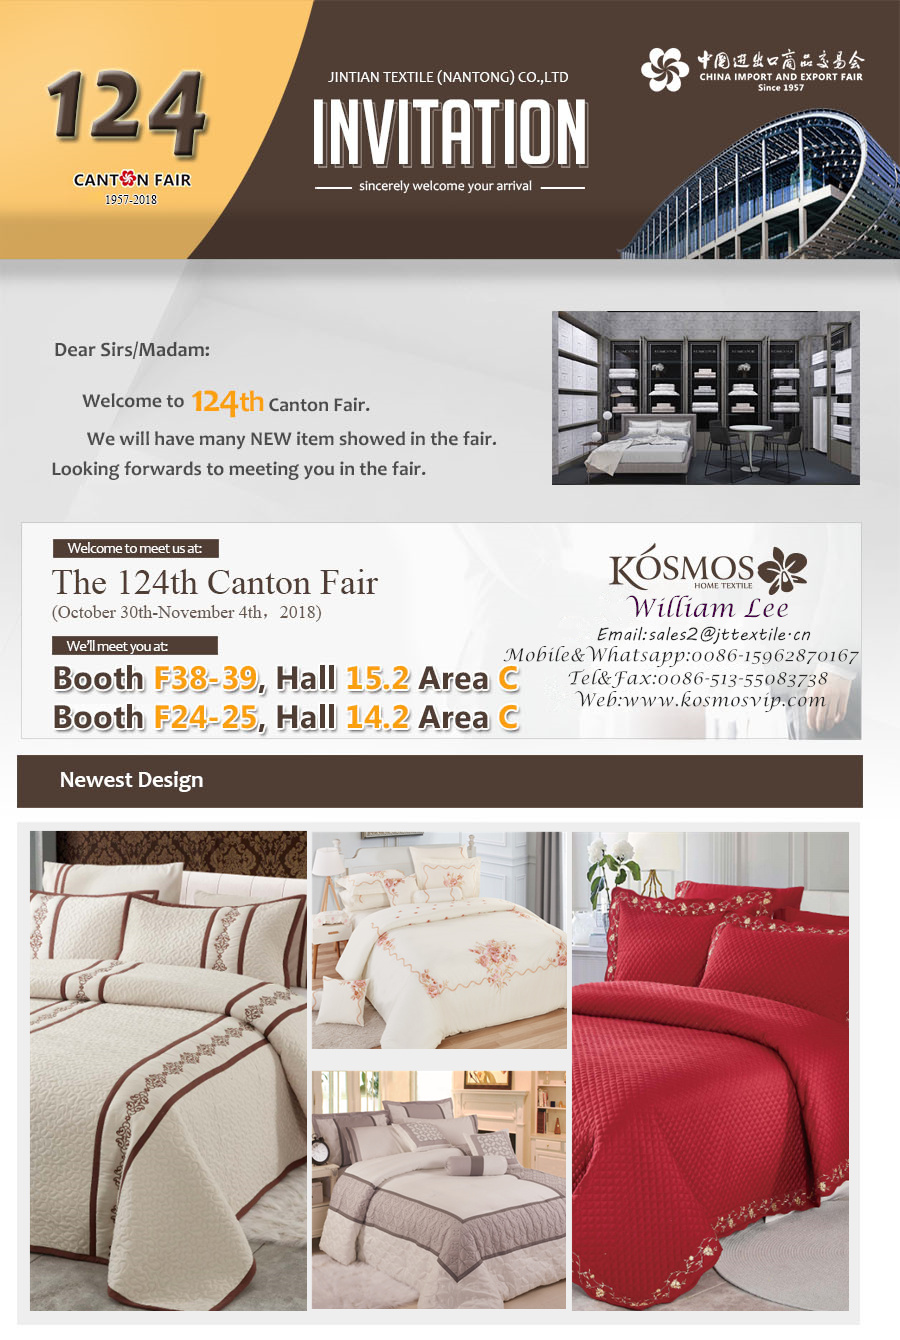 KOSMOS-Invitation for the 124th Canton Fair